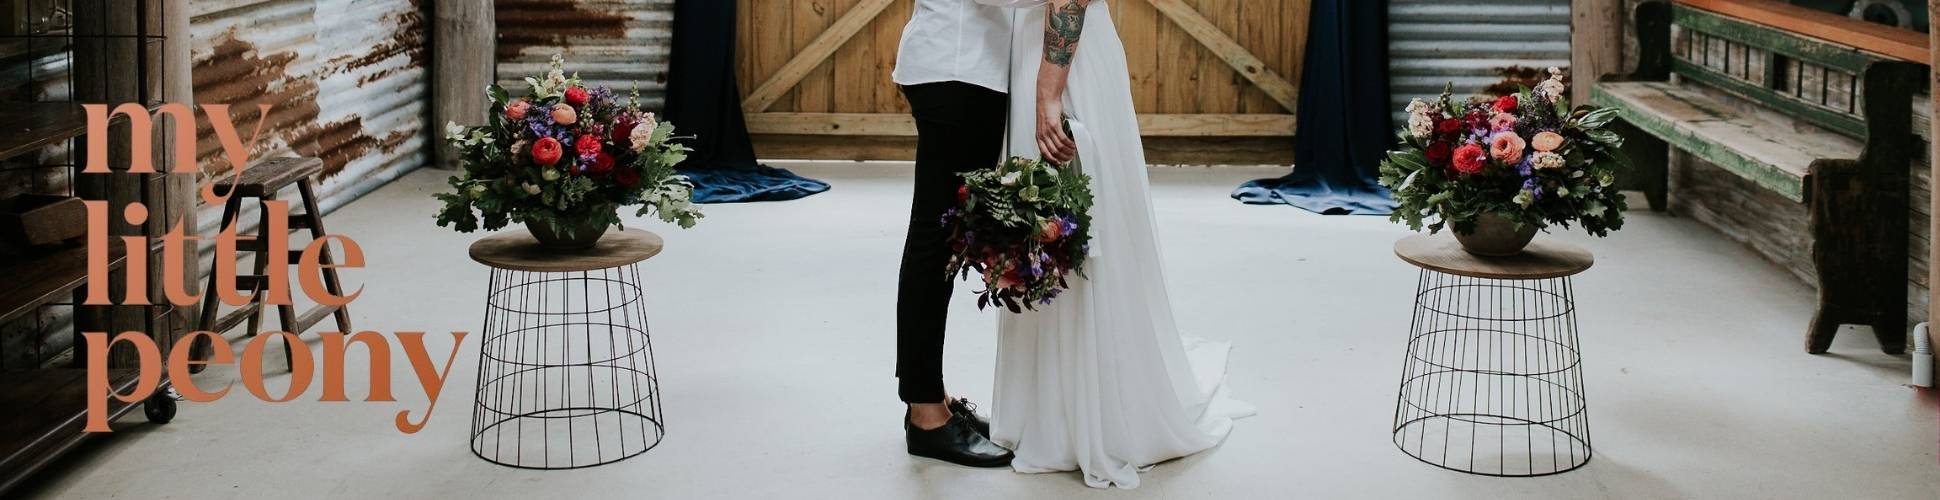 My Little Peony Same-Sex Wedding Directory - Dancing With Her - Lesbian Wedding